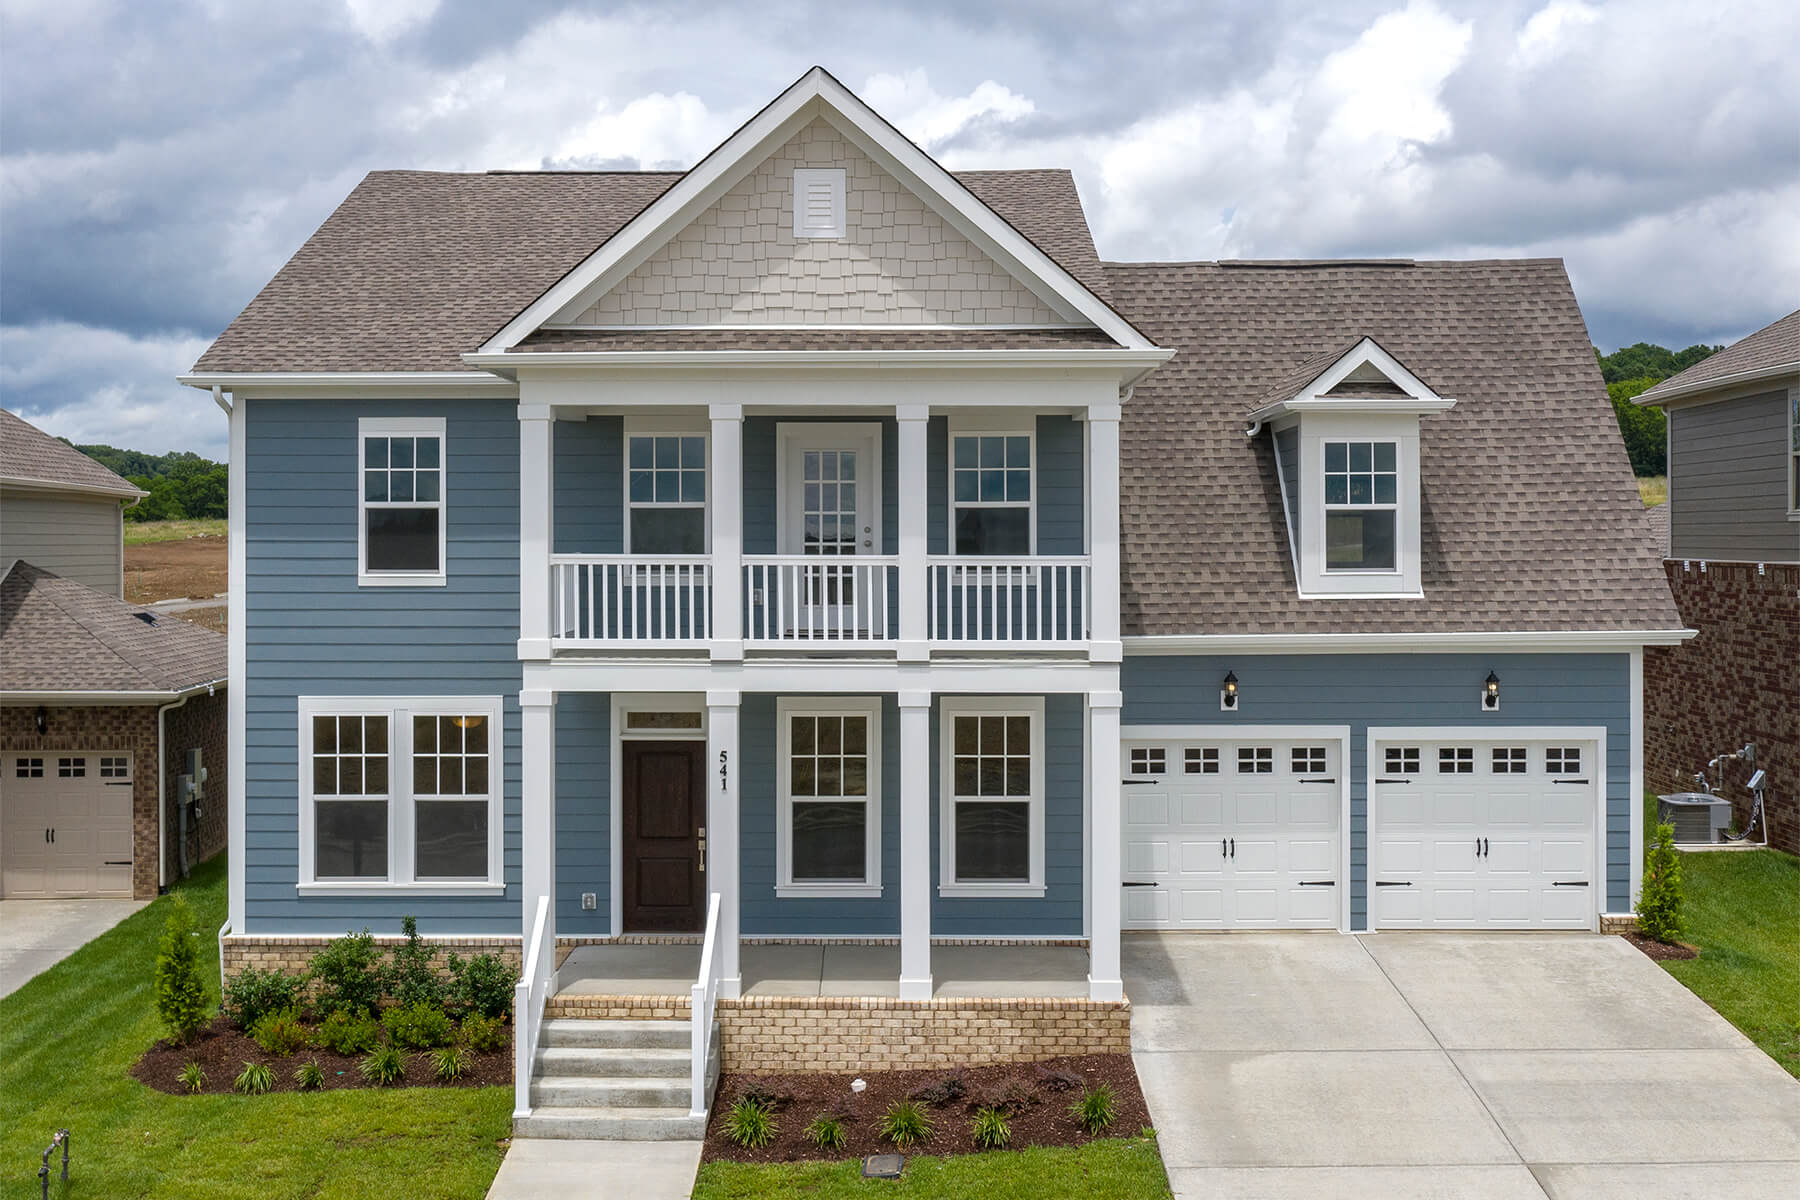 70' Lots by Lennar - Durham Farms New Homes for Sale in Hendersonville, TN